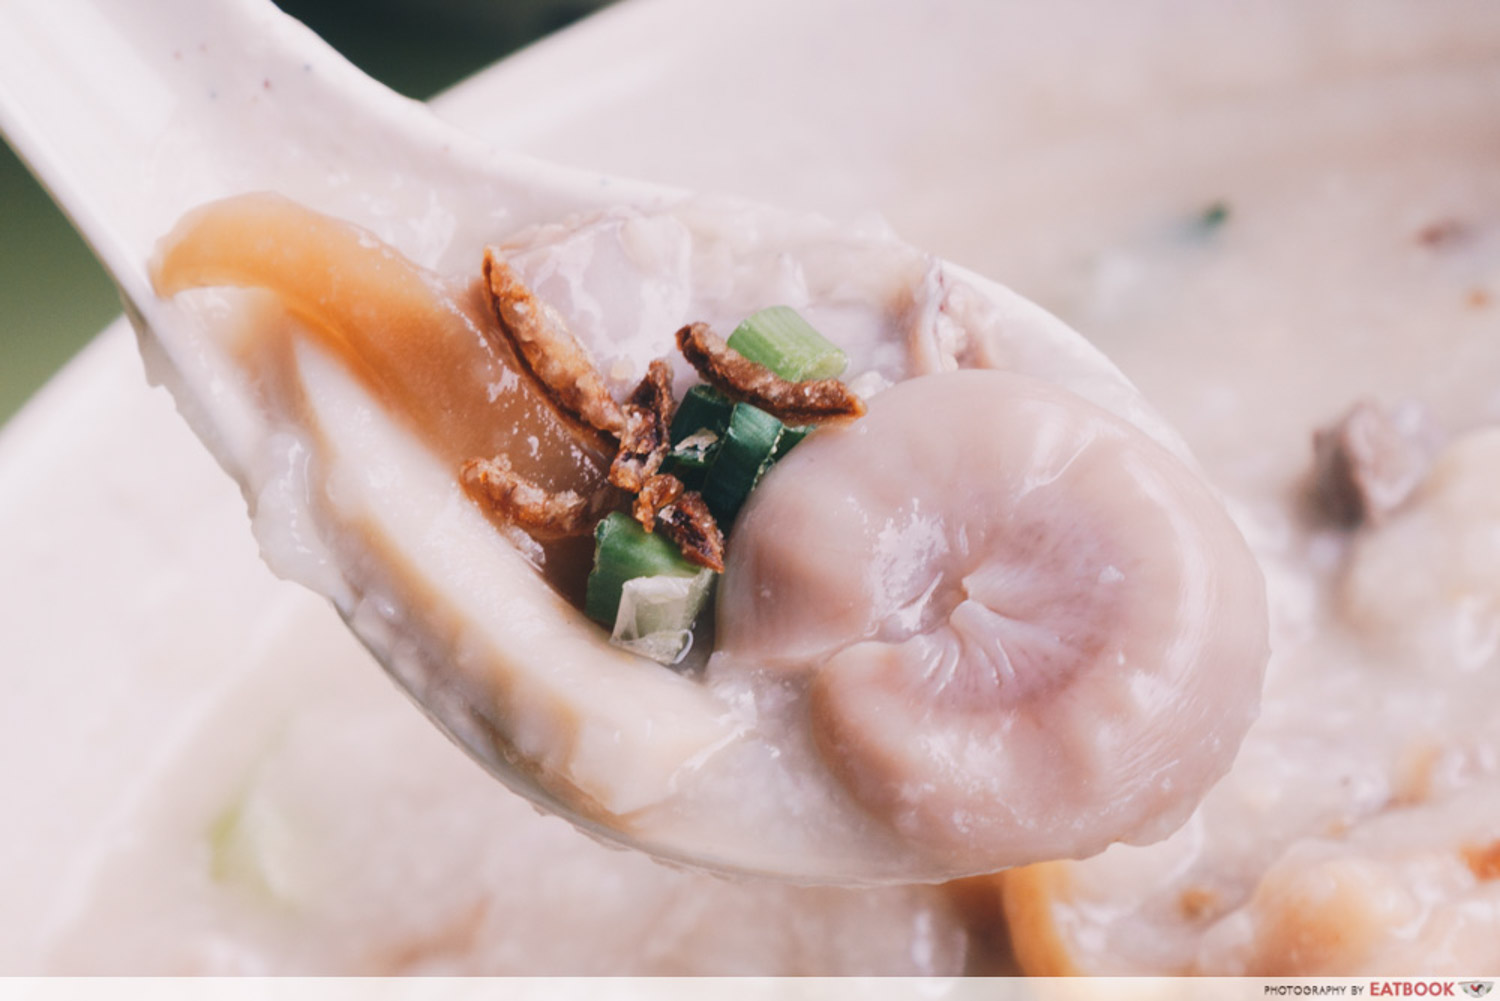 Weng Kiang Kee Porridge - Intestine spoon